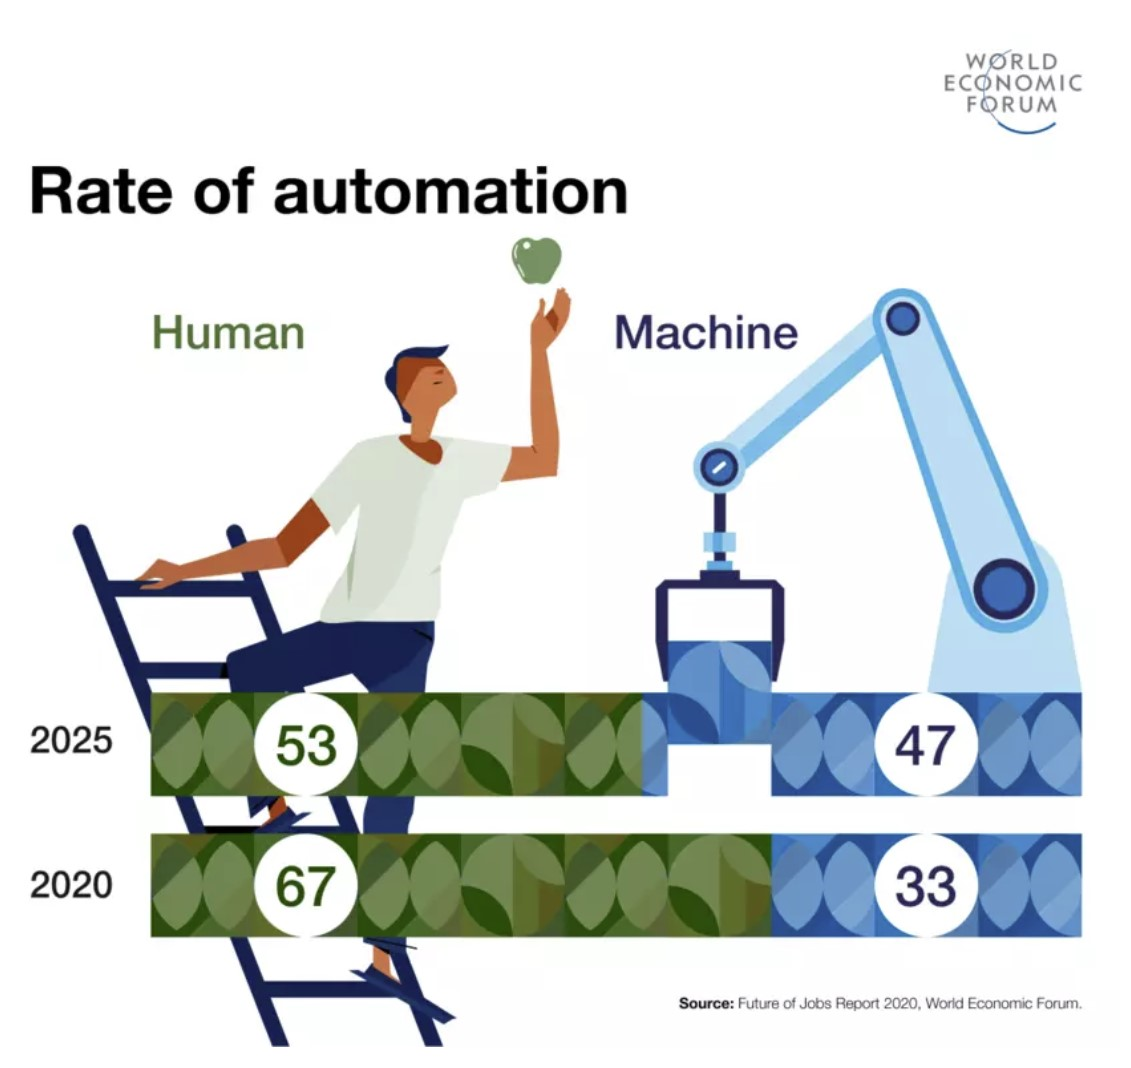 Rate of Automation through 2025